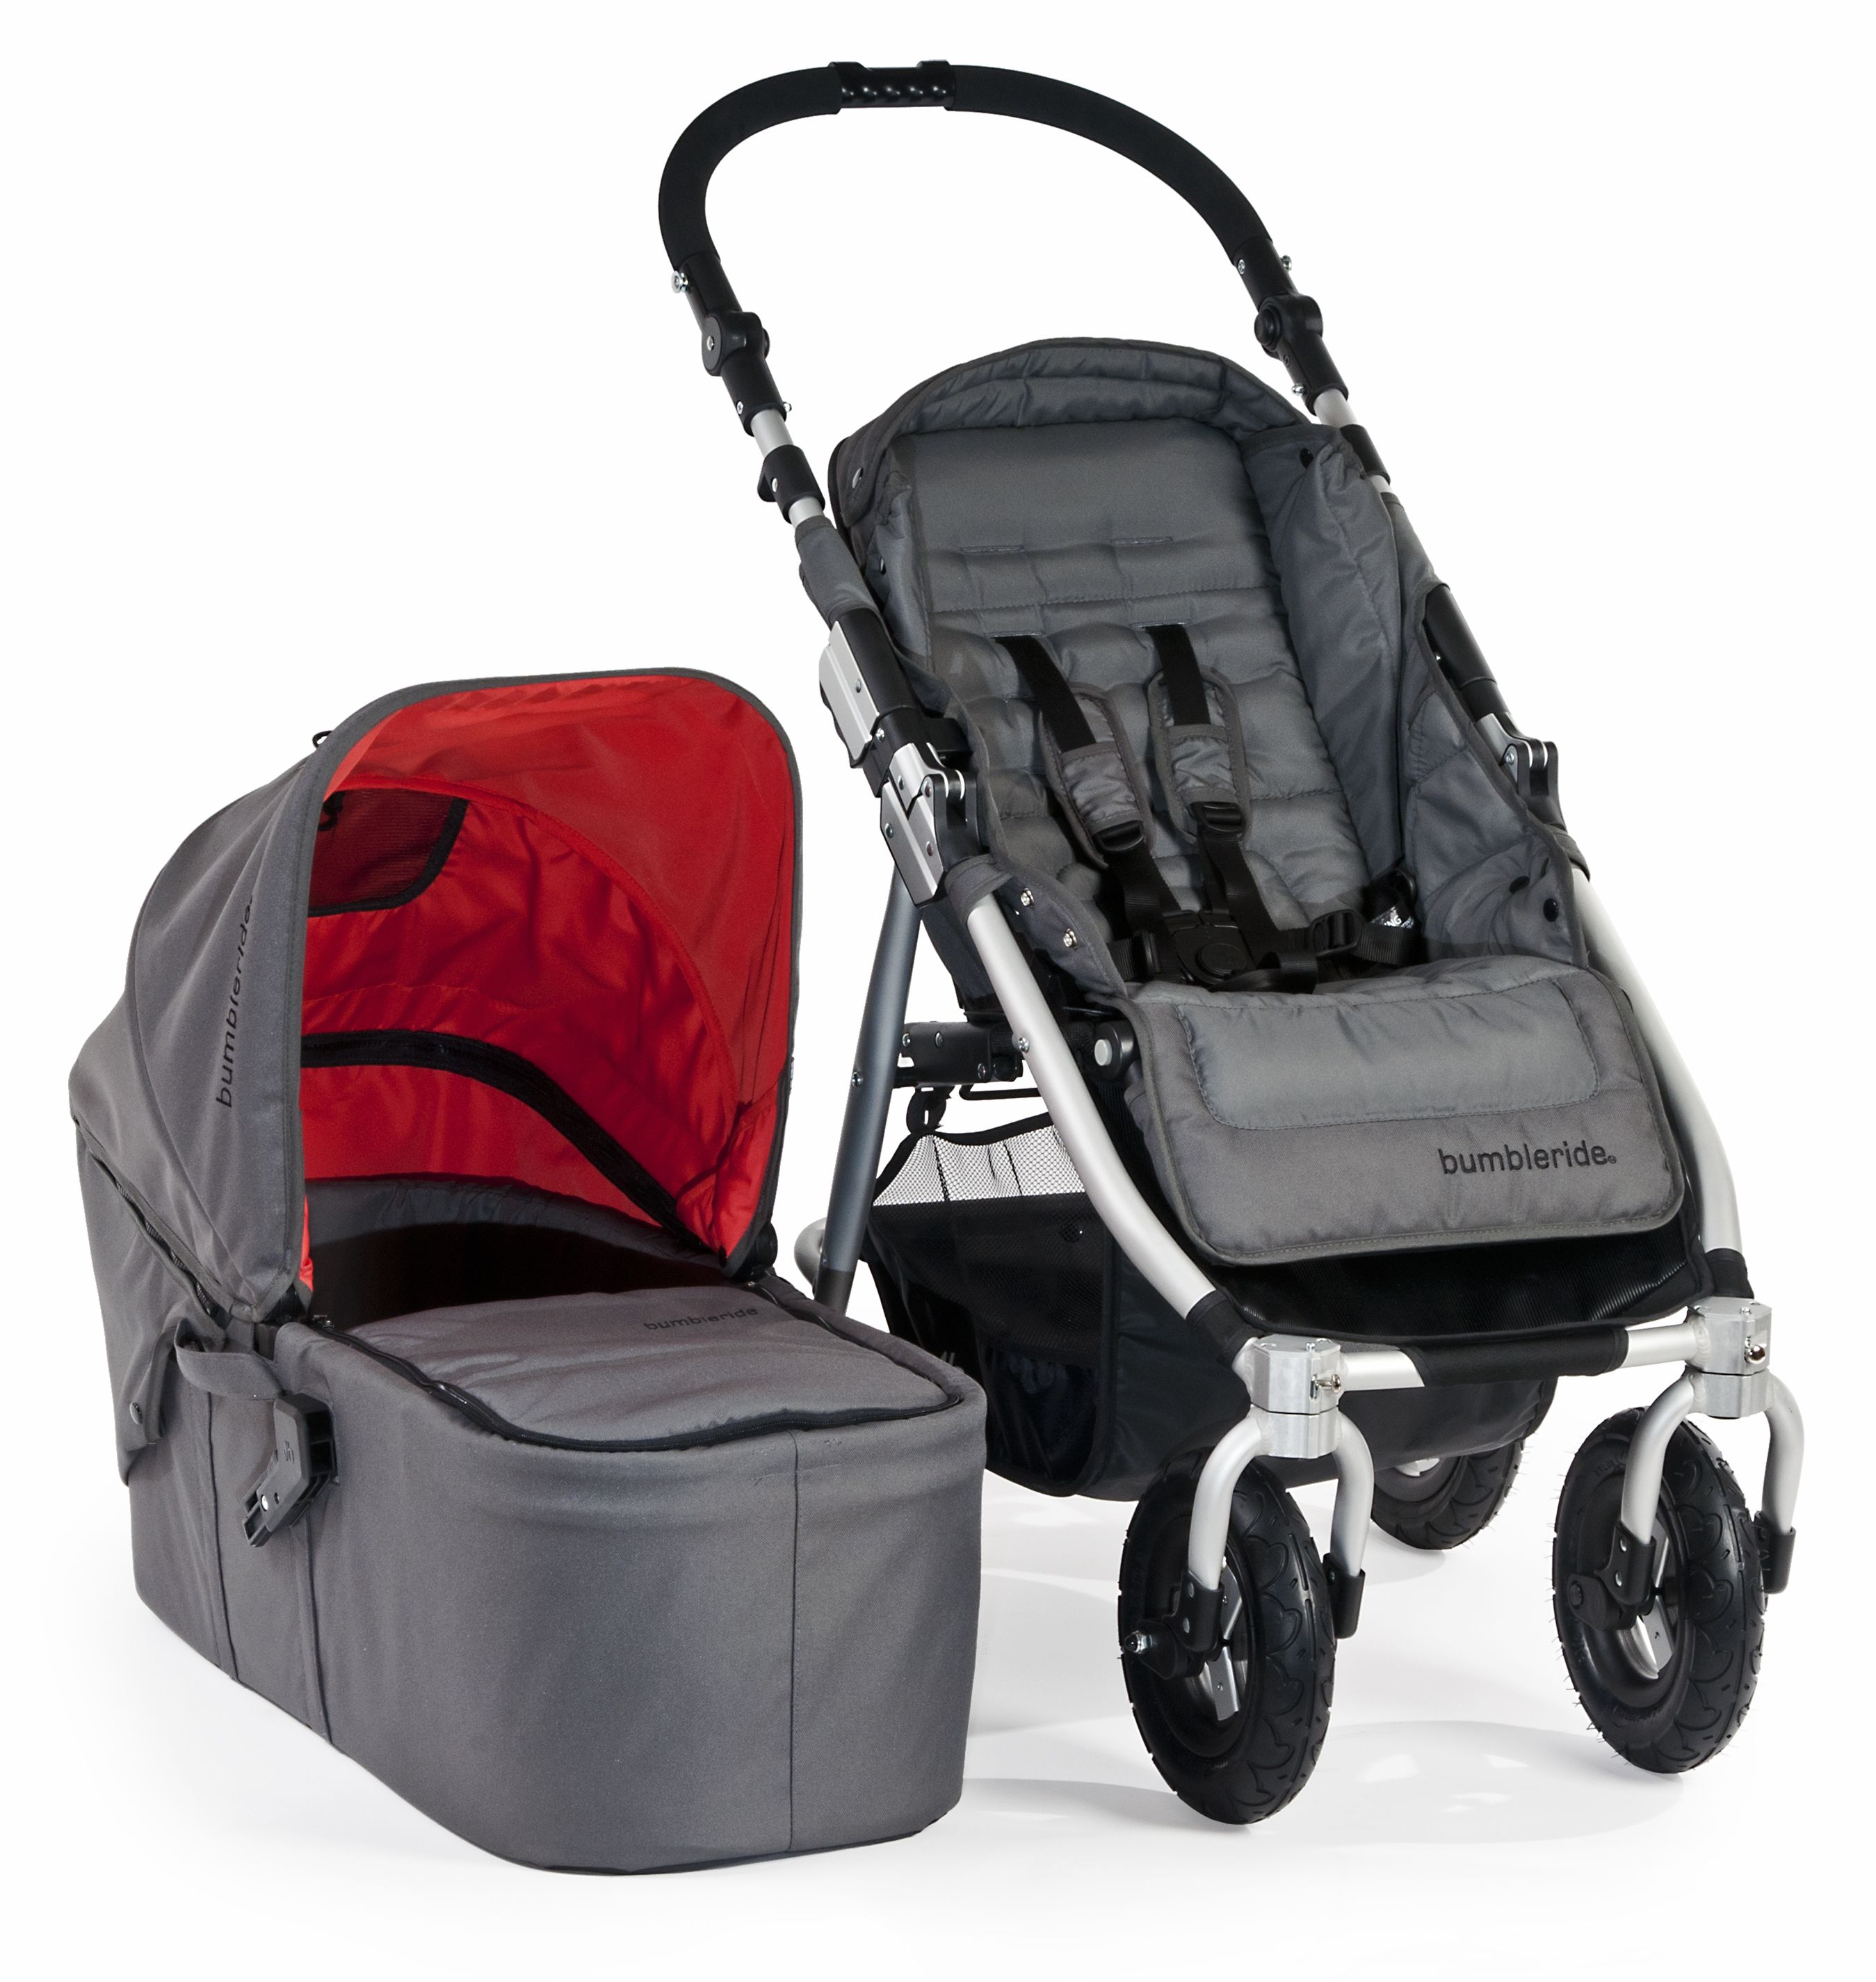 """The Bumbleride Indie 4 Urban All Terrain Stroller with"